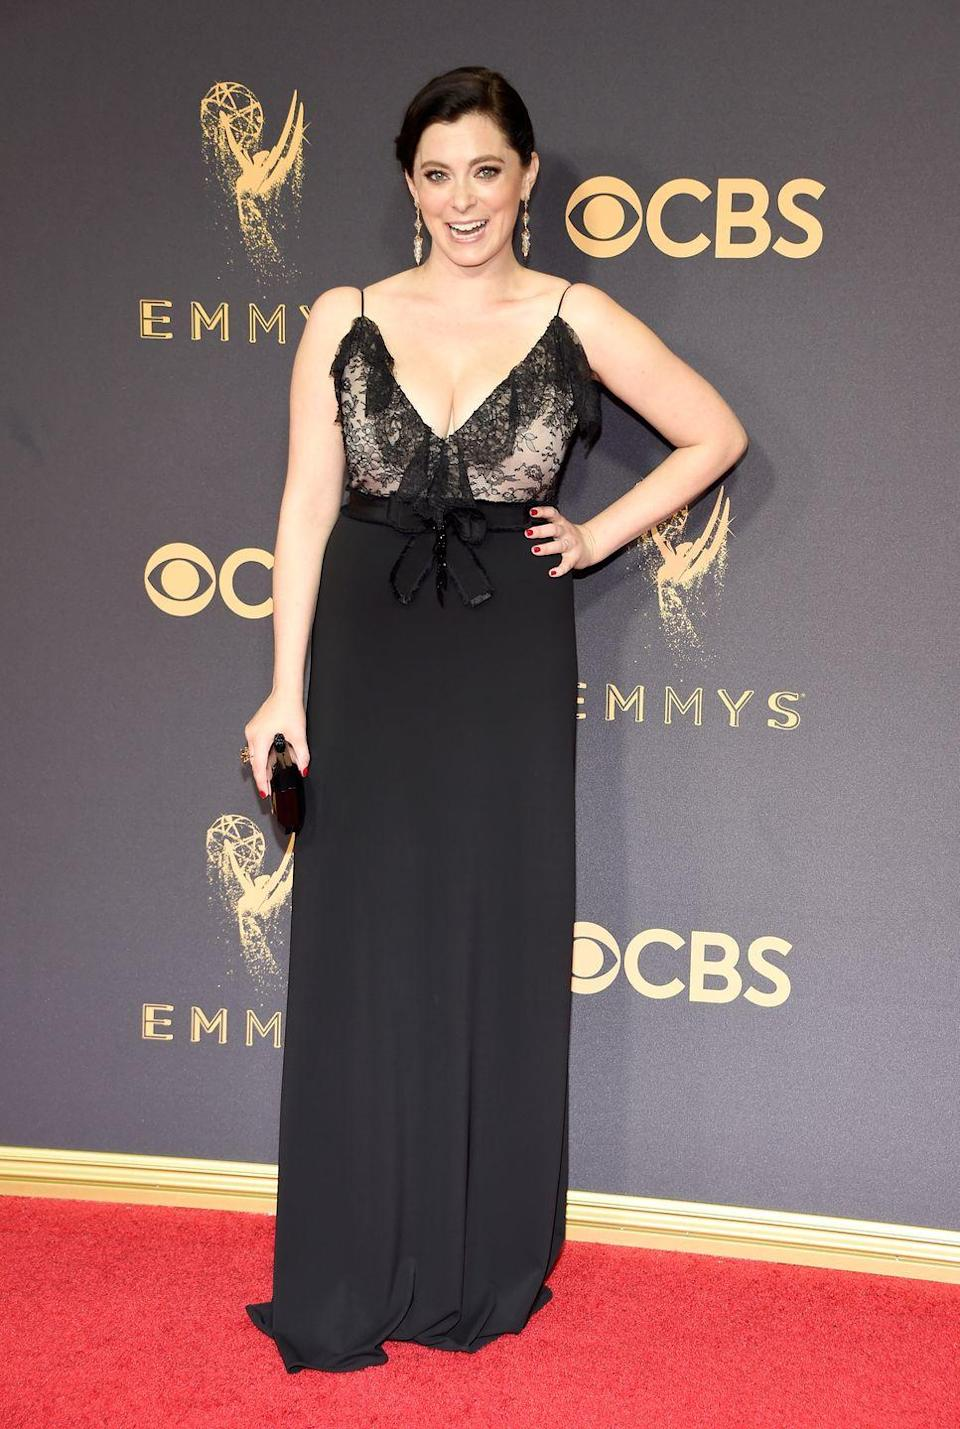 """<p><em>Crazy Ex-Girlfriend</em> creator and actress Rachel Bloom may have a Golden Globe under her belt for her hit comedy show, but the star has admitted she still struggles to find a designer to her dress her for red carpet events.</p><p>Arriving at the 2017 Emmy Awards, Bloom revealed <a href=""""https://www.harpersbazaar.com/uk/fashion/fashion-news/news/a43862/rachel-bloom-emmys-dress/"""" rel=""""nofollow noopener"""" target=""""_blank"""" data-ylk=""""slk:she ended up buying the £2,500 Gucci dress"""" class=""""link rapid-noclick-resp"""">she ended up buying the £2,500 Gucci dress</a> she was wearing, telling <a href=""""https://twitter.com/pretareporter/status/909549260303081472"""" rel=""""nofollow noopener"""" target=""""_blank"""" data-ylk=""""slk:Giuliana Rancic on the E! red carpet"""" class=""""link rapid-noclick-resp"""">Giuliana Rancic on the E! red carpet</a>: """"I've said in an interview before, 'Oh, sometimes it's hard for places to lend me dresses because I'm not, like, a size 0,' but also, I can afford it, so it's okay.""""</p><p><span class=""""redactor-invisible-space"""">She later clarified that she had problem with the high-end designer, saying on <a href=""""https://twitter.com/Racheldoesstuff/status/909574888955846658"""" rel=""""nofollow noopener"""" target=""""_blank"""" data-ylk=""""slk:Twitter"""" class=""""link rapid-noclick-resp"""">Twitter</a>: """"To be clear: we didn't ask Gucci to dress me because they loan to very few. </span></p><p><span class=""""redactor-invisible-space"""">""""That being said, pickings are still slim for non-sample size ladies.""""</span></p>"""